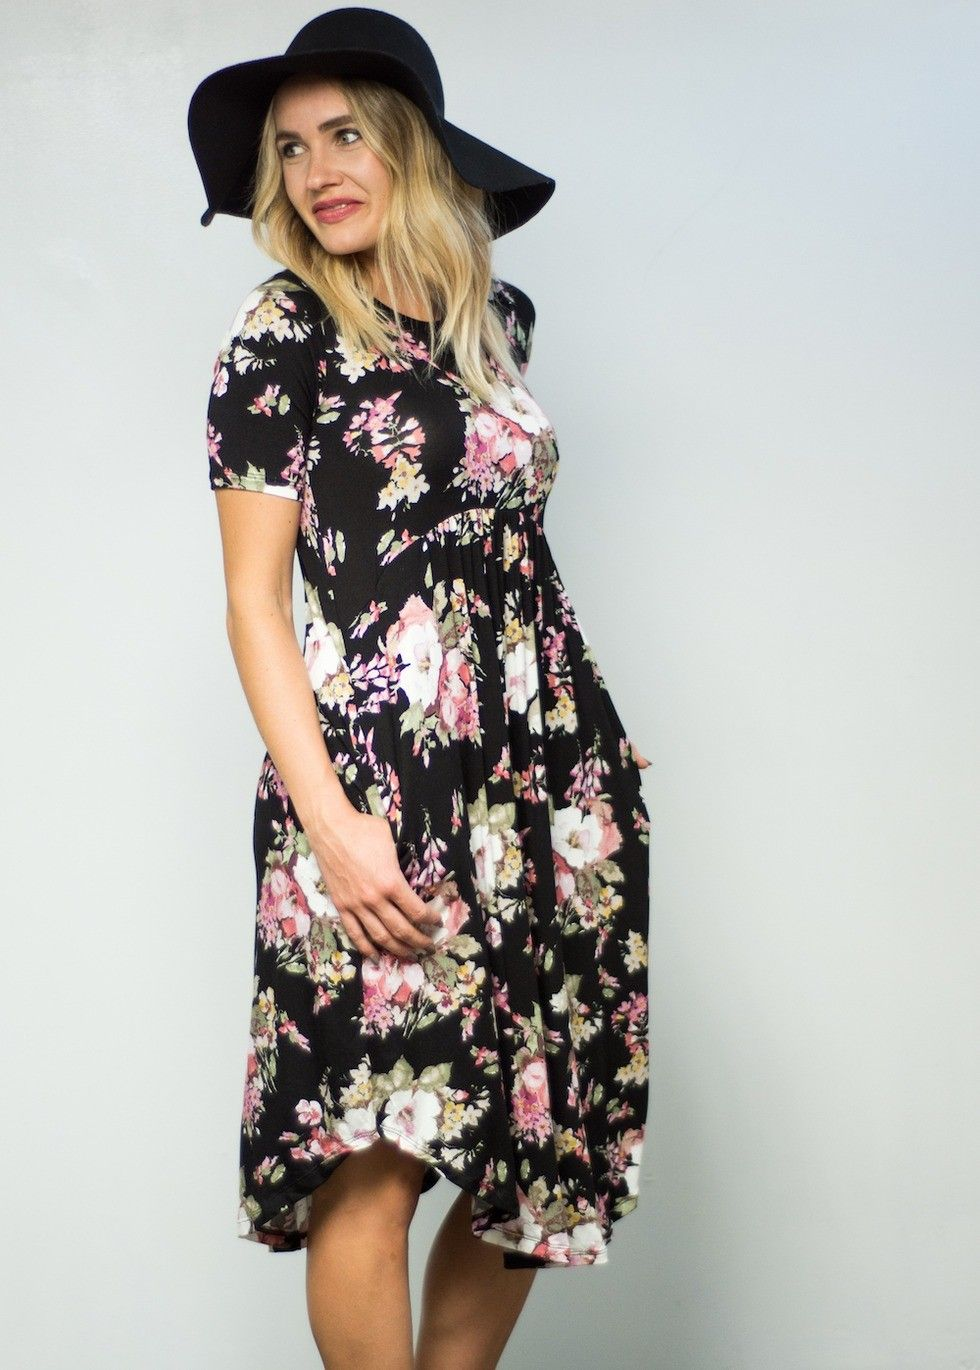 The black with mauve floral dress is a great everyday dress the